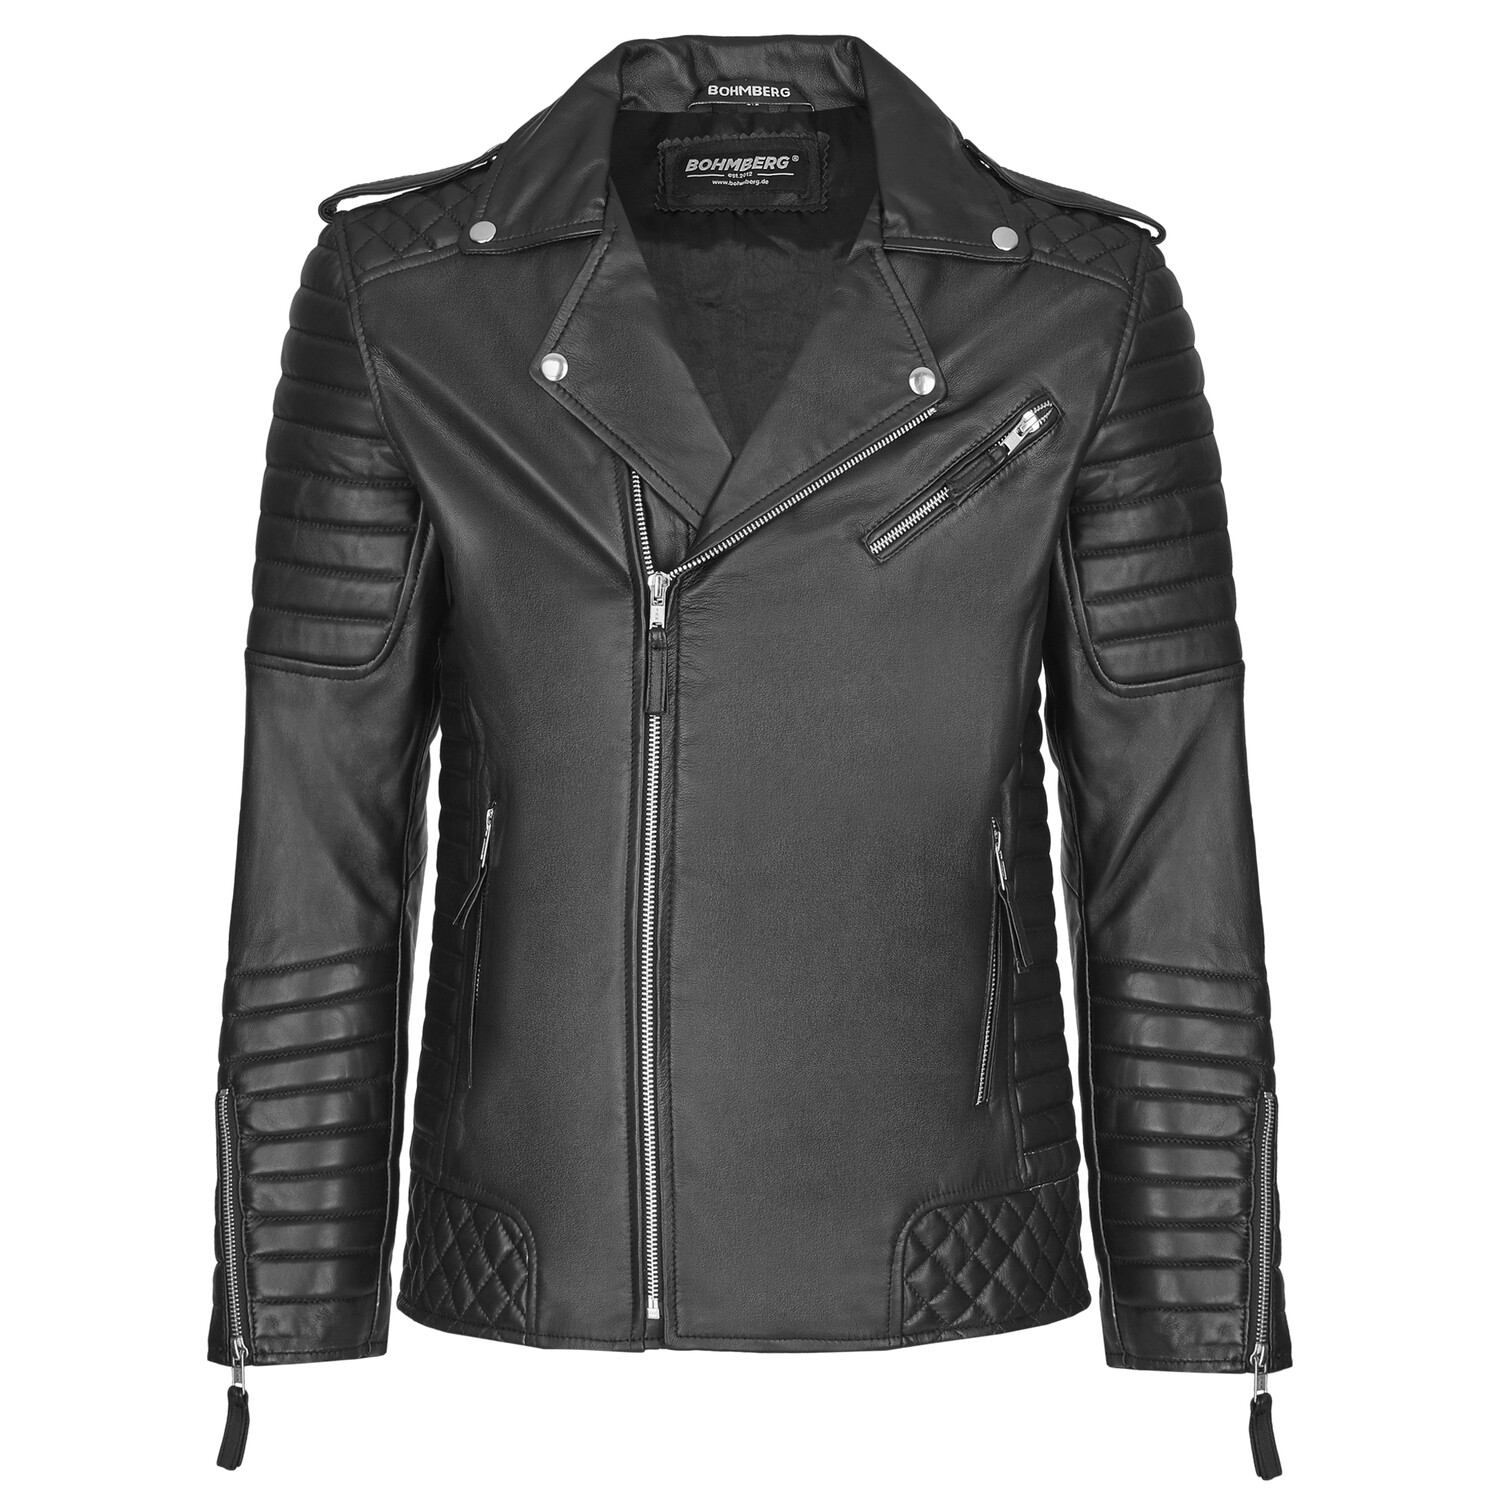 Bohmberg men's leather jacket VIRTUS made of soft goat nappa leather in premium quality